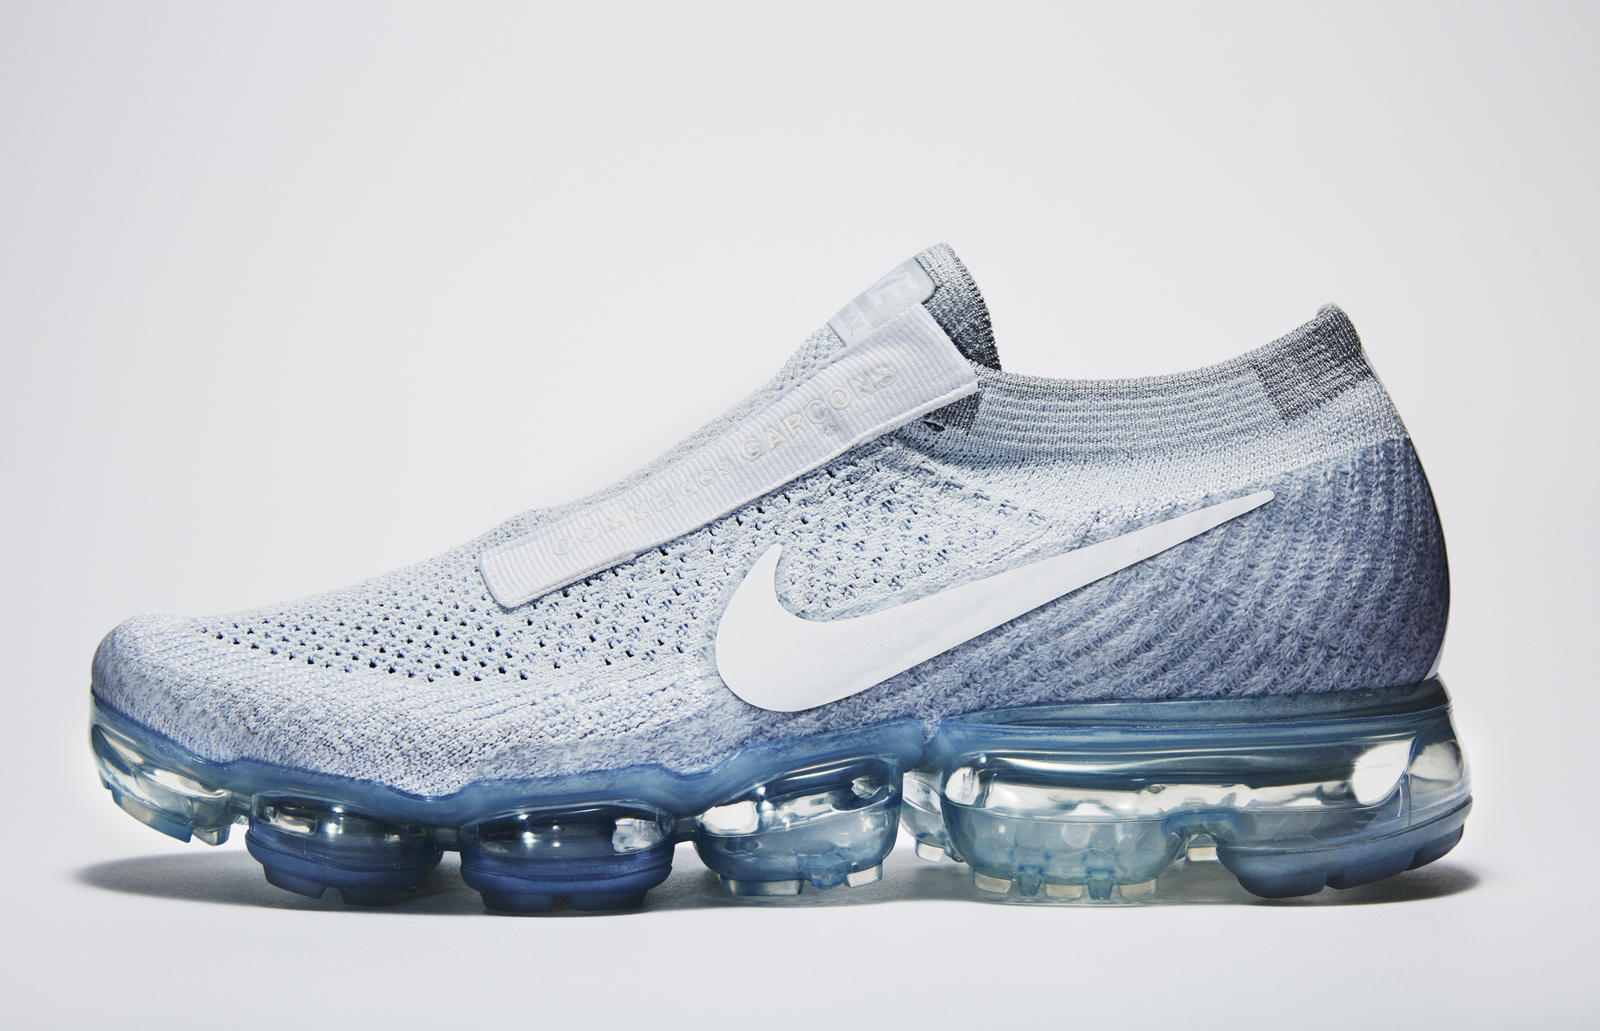 Nike_VaporMax_for_Comme_des_Garcons_4_native_1600.jpg